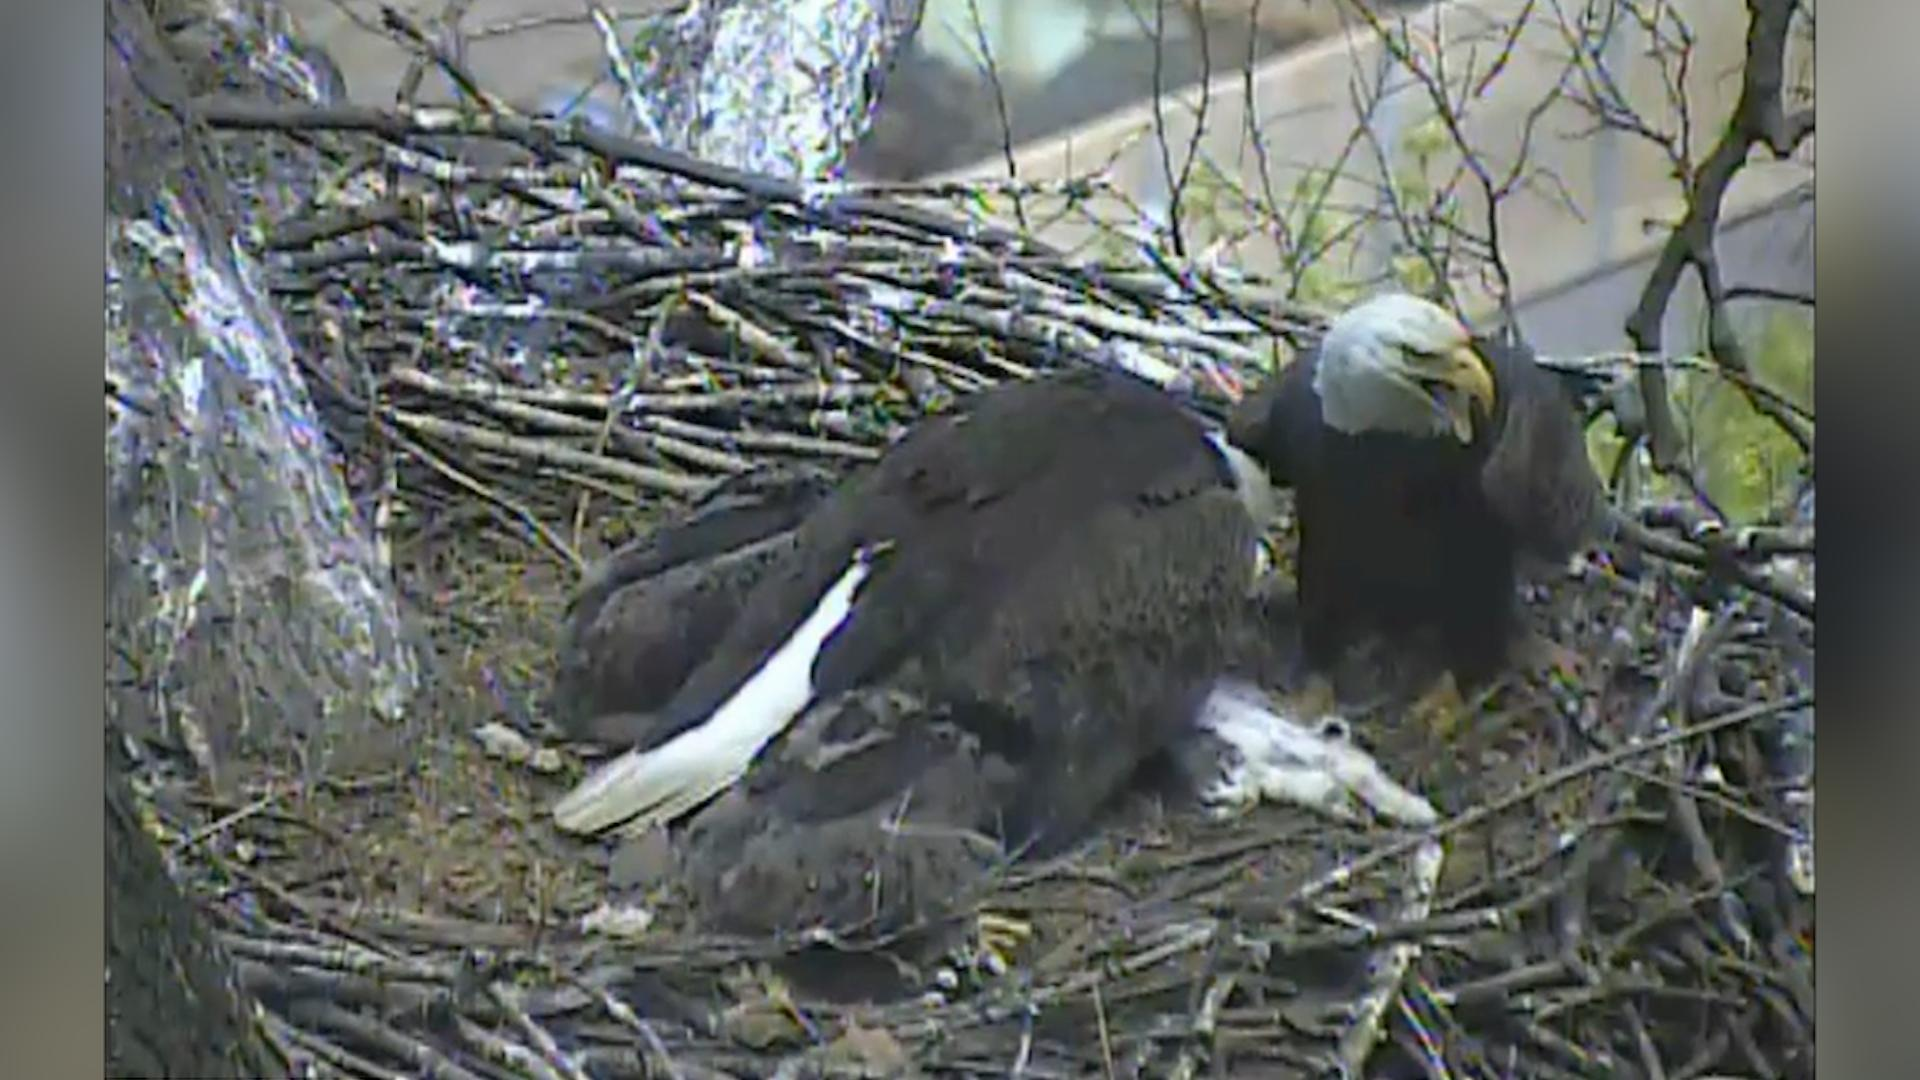 People love watching nature on nest cams — until it gets grisly